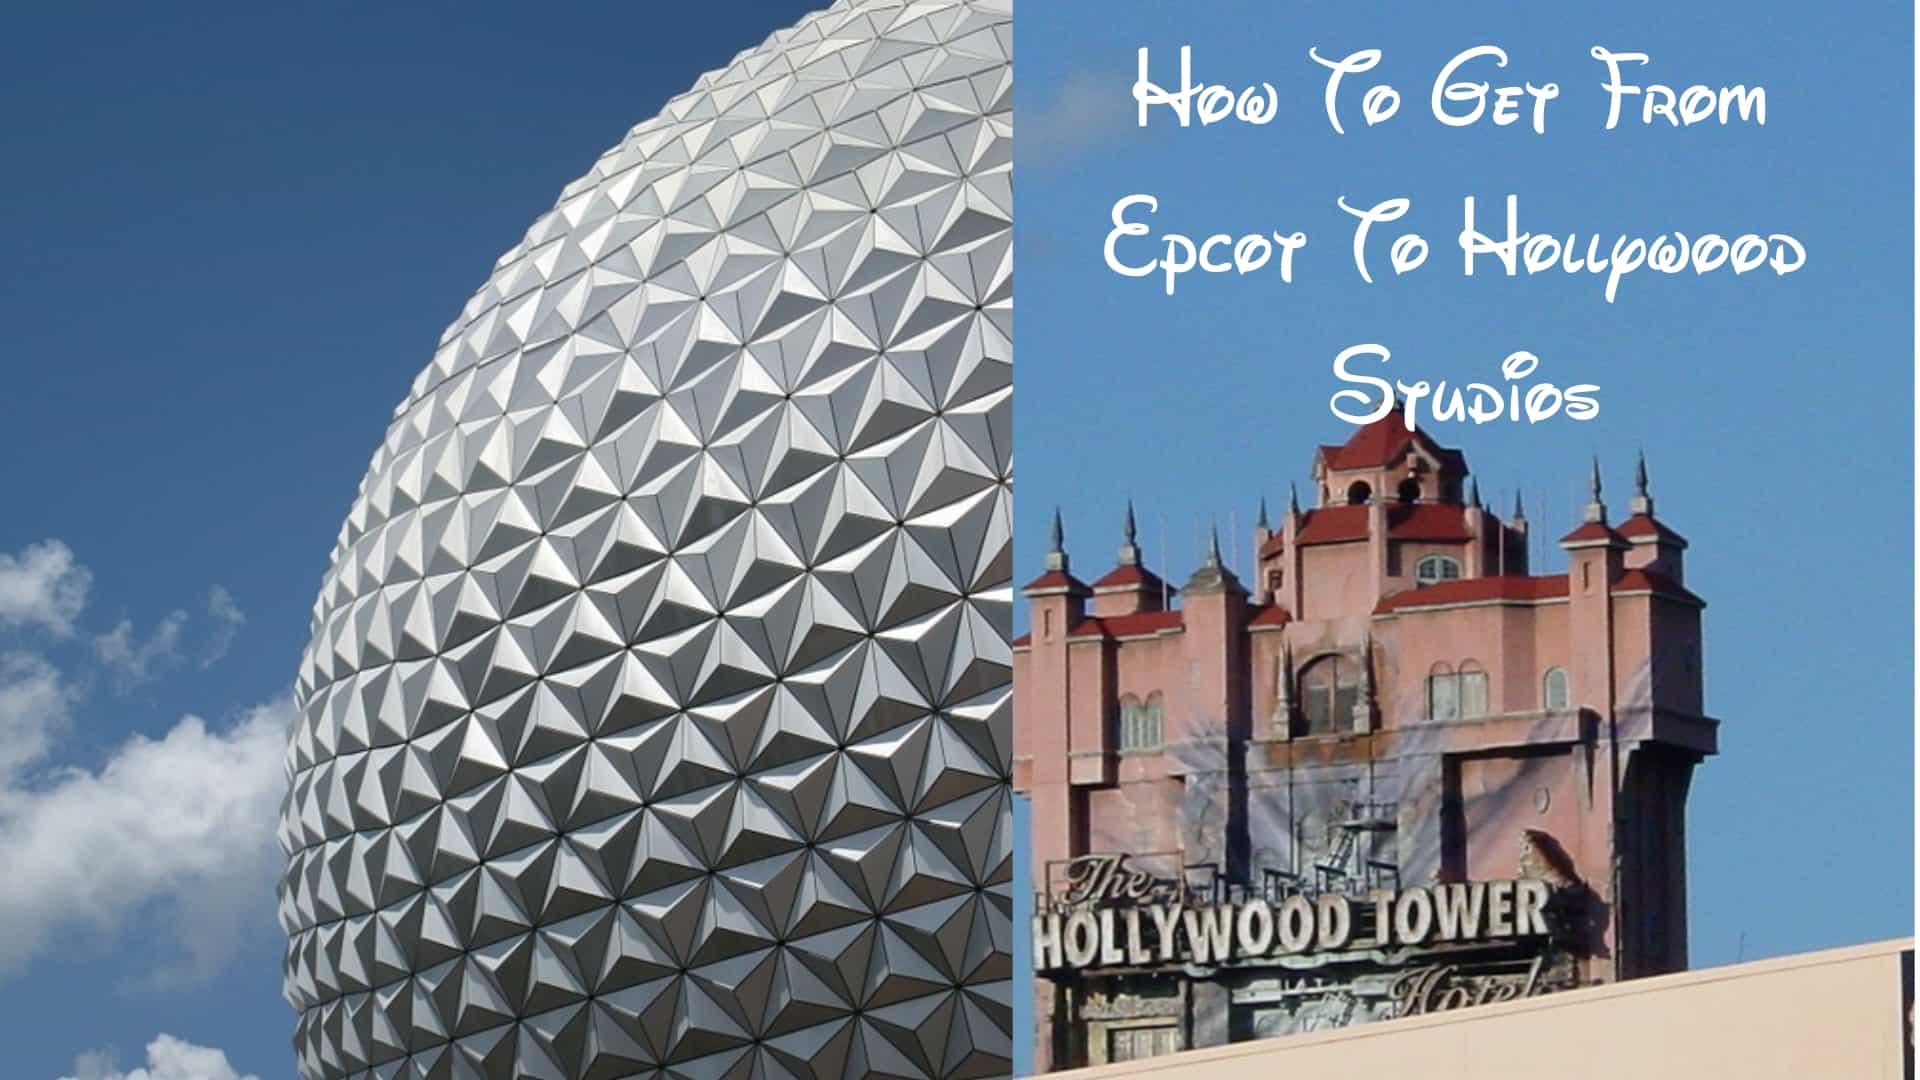 How To Get From Epcot To Hollywood Studios Epcot 1